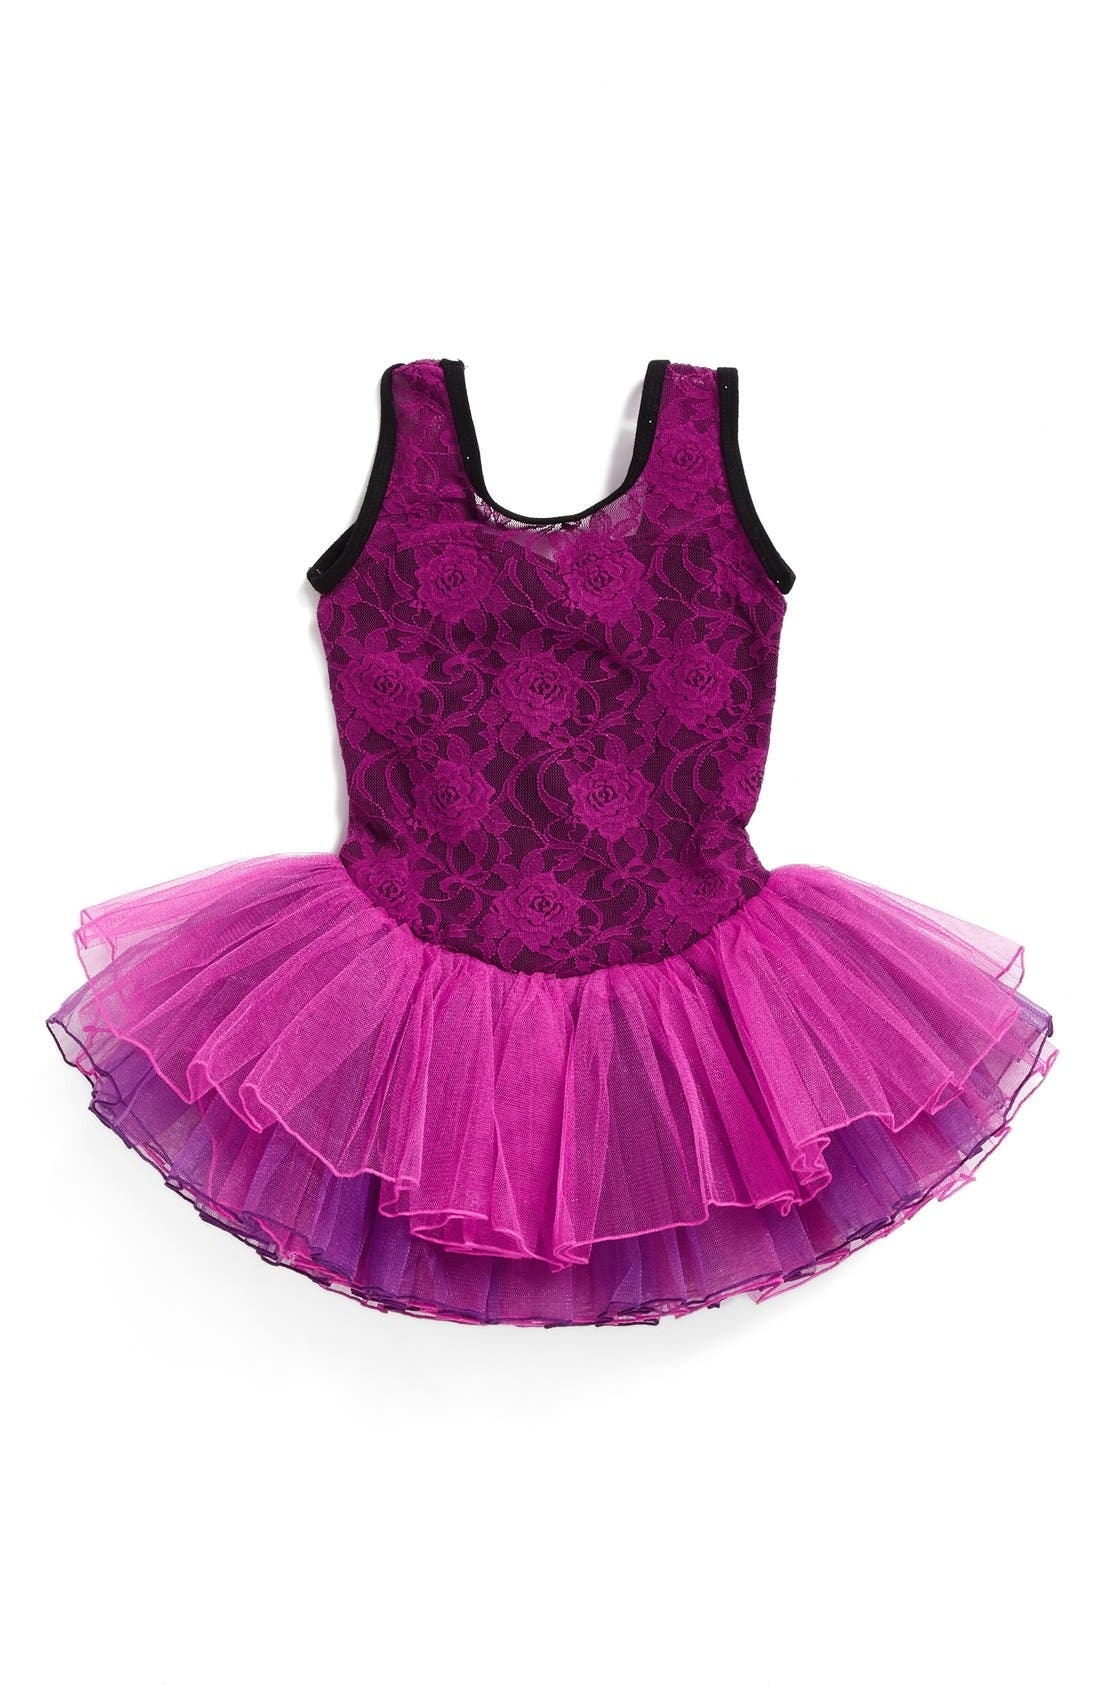 POPATU,                             Lace Tutu Dress,                             Main thumbnail 1, color,                             502